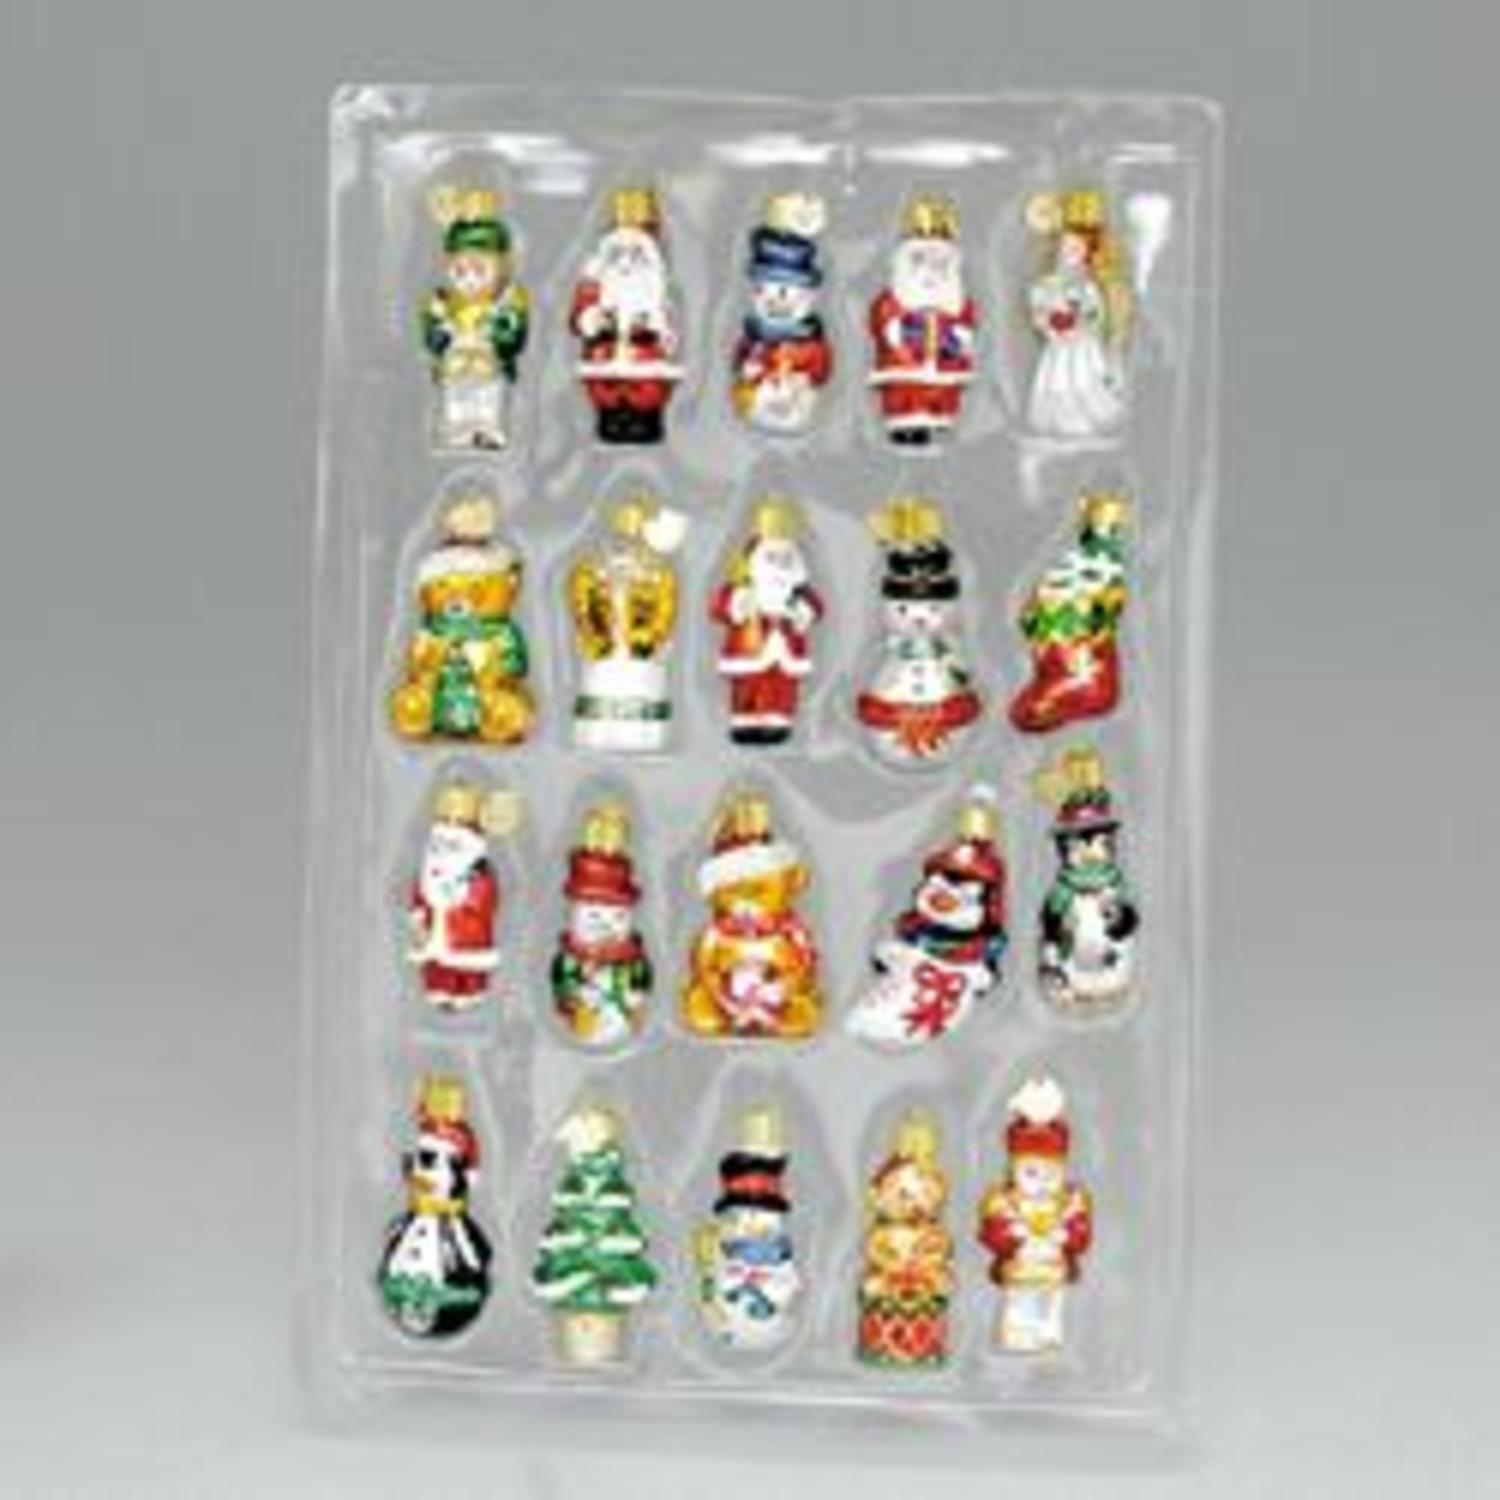 Club Pack of 120 Boxed Gift Set Handcrafted Miniature Glass Christmas Ornaments